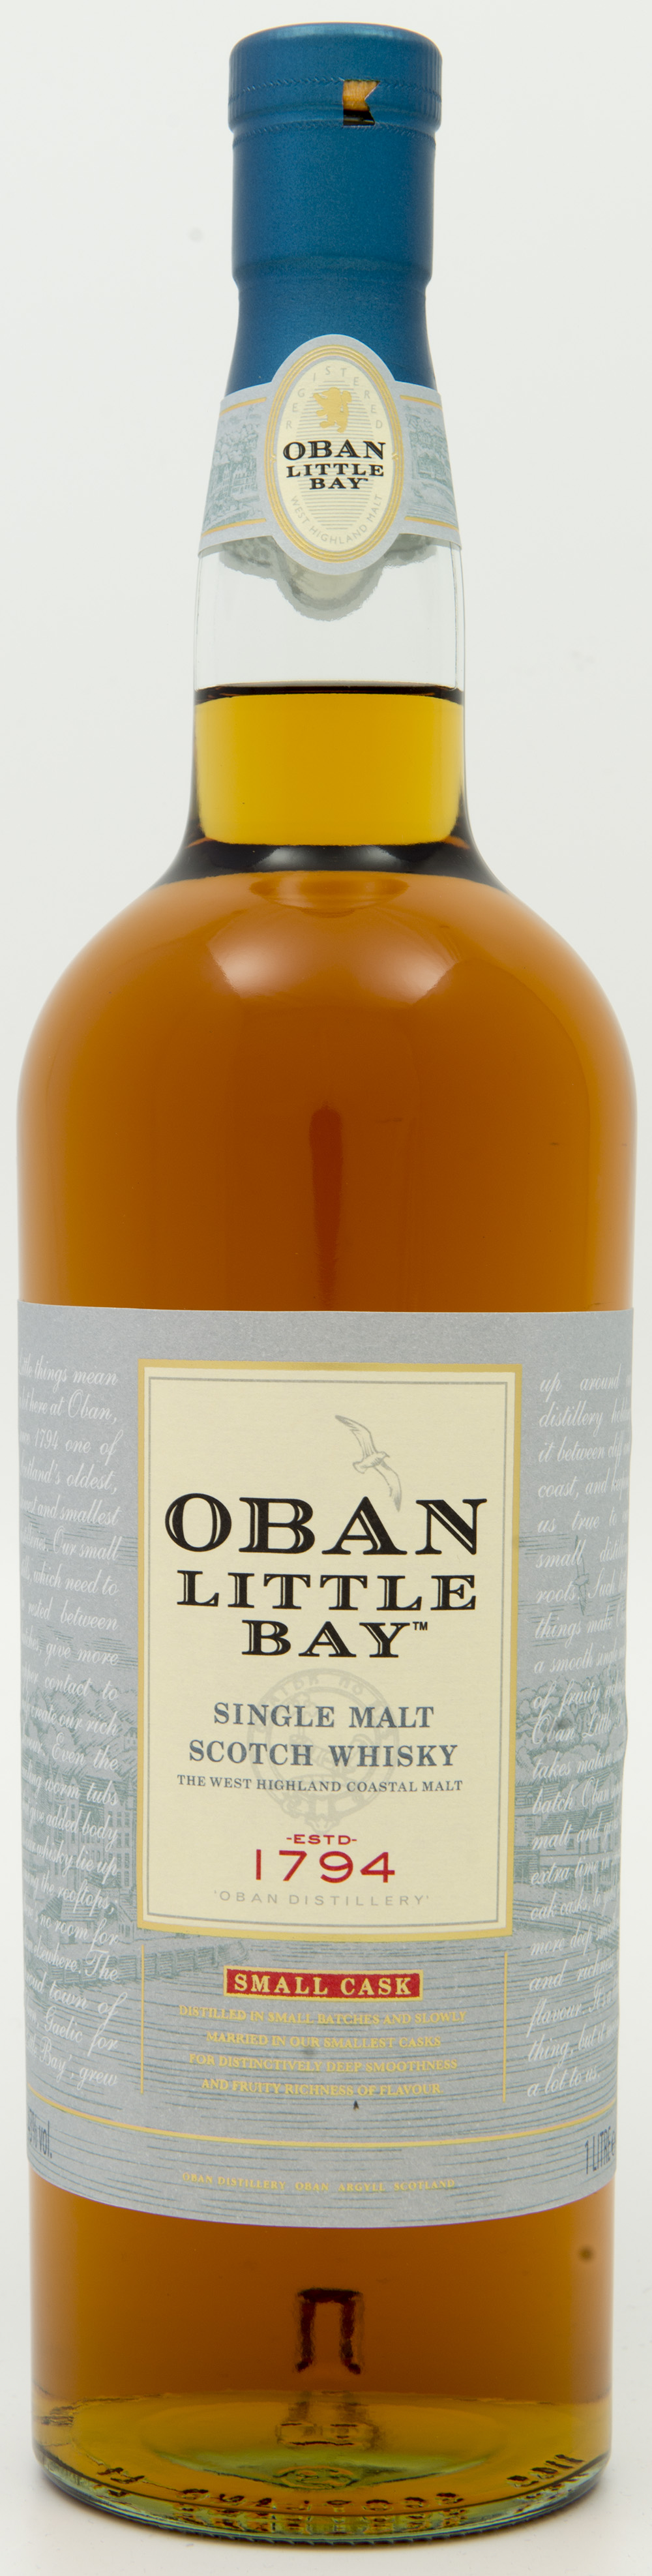 Billede: DSC_8212 - Oban Little Bay - bottle front.jpg